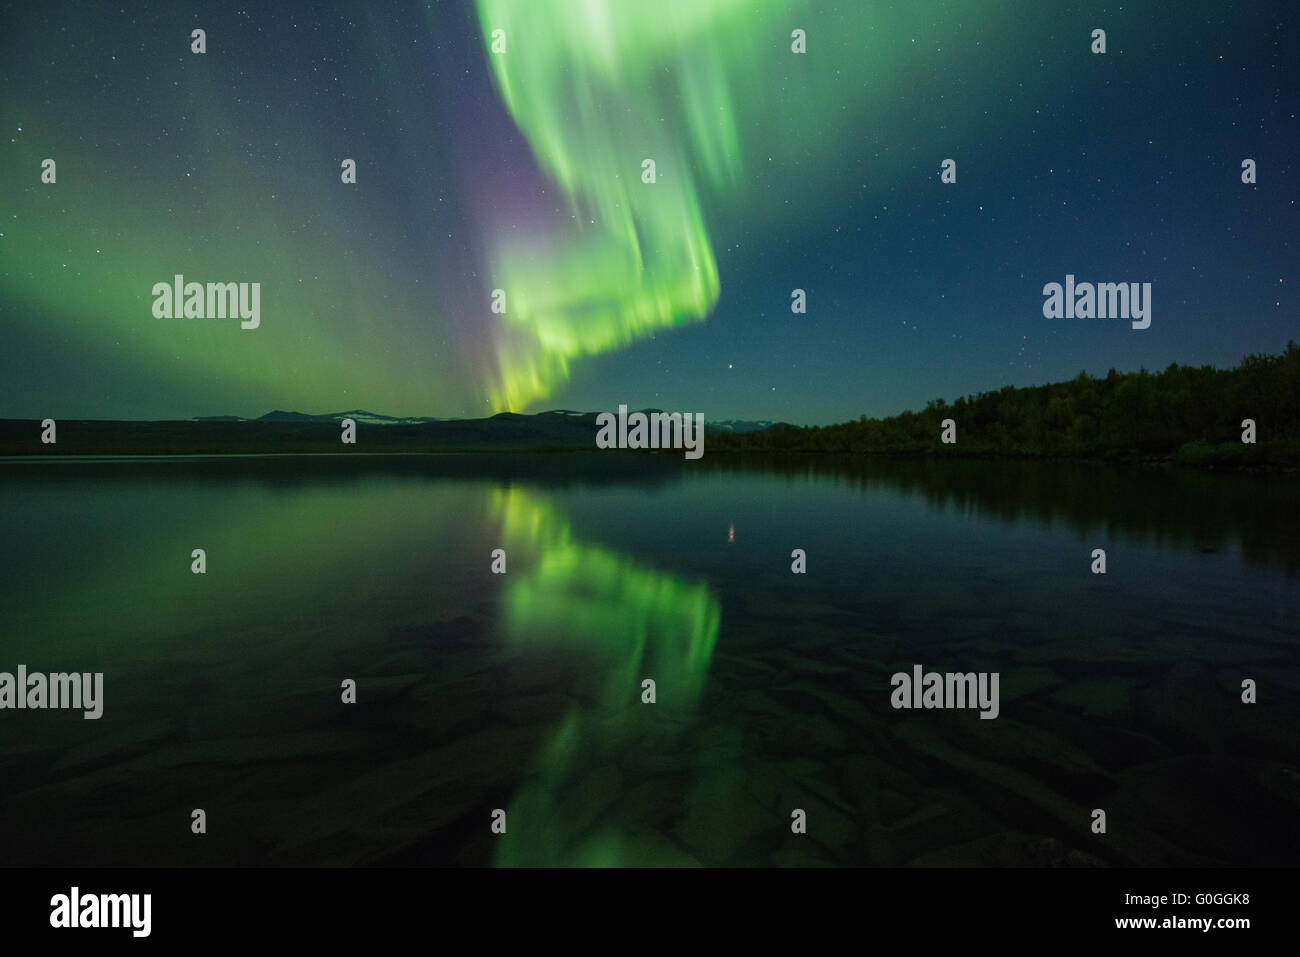 Northern lights reflect in lake Sitojaure outside of Sitojaure hut, Kungsleden trail, Lapland, Sweden - Stock Image